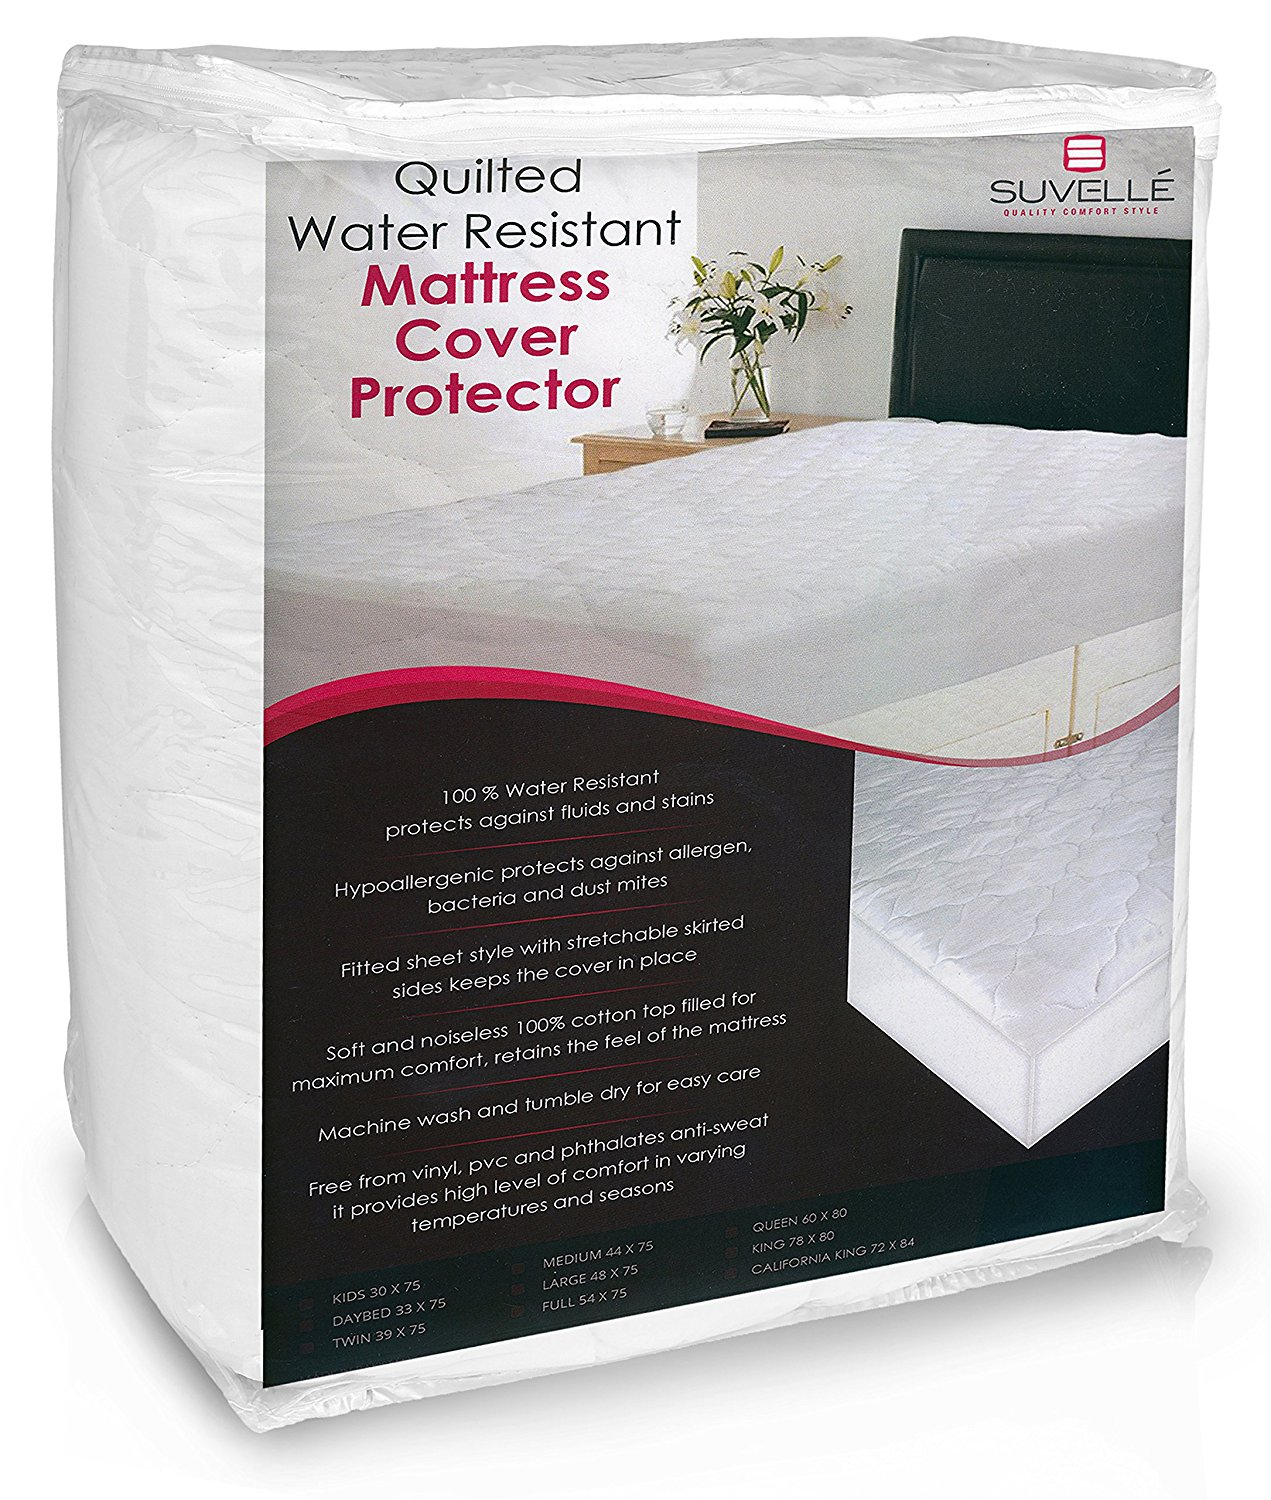 Suvelle 39 X 75 Twin Hypoallergenic Water Resistant Mattress Pad Cover Protector, Vinyl Free, Fitted Breathable Quilted Cotton